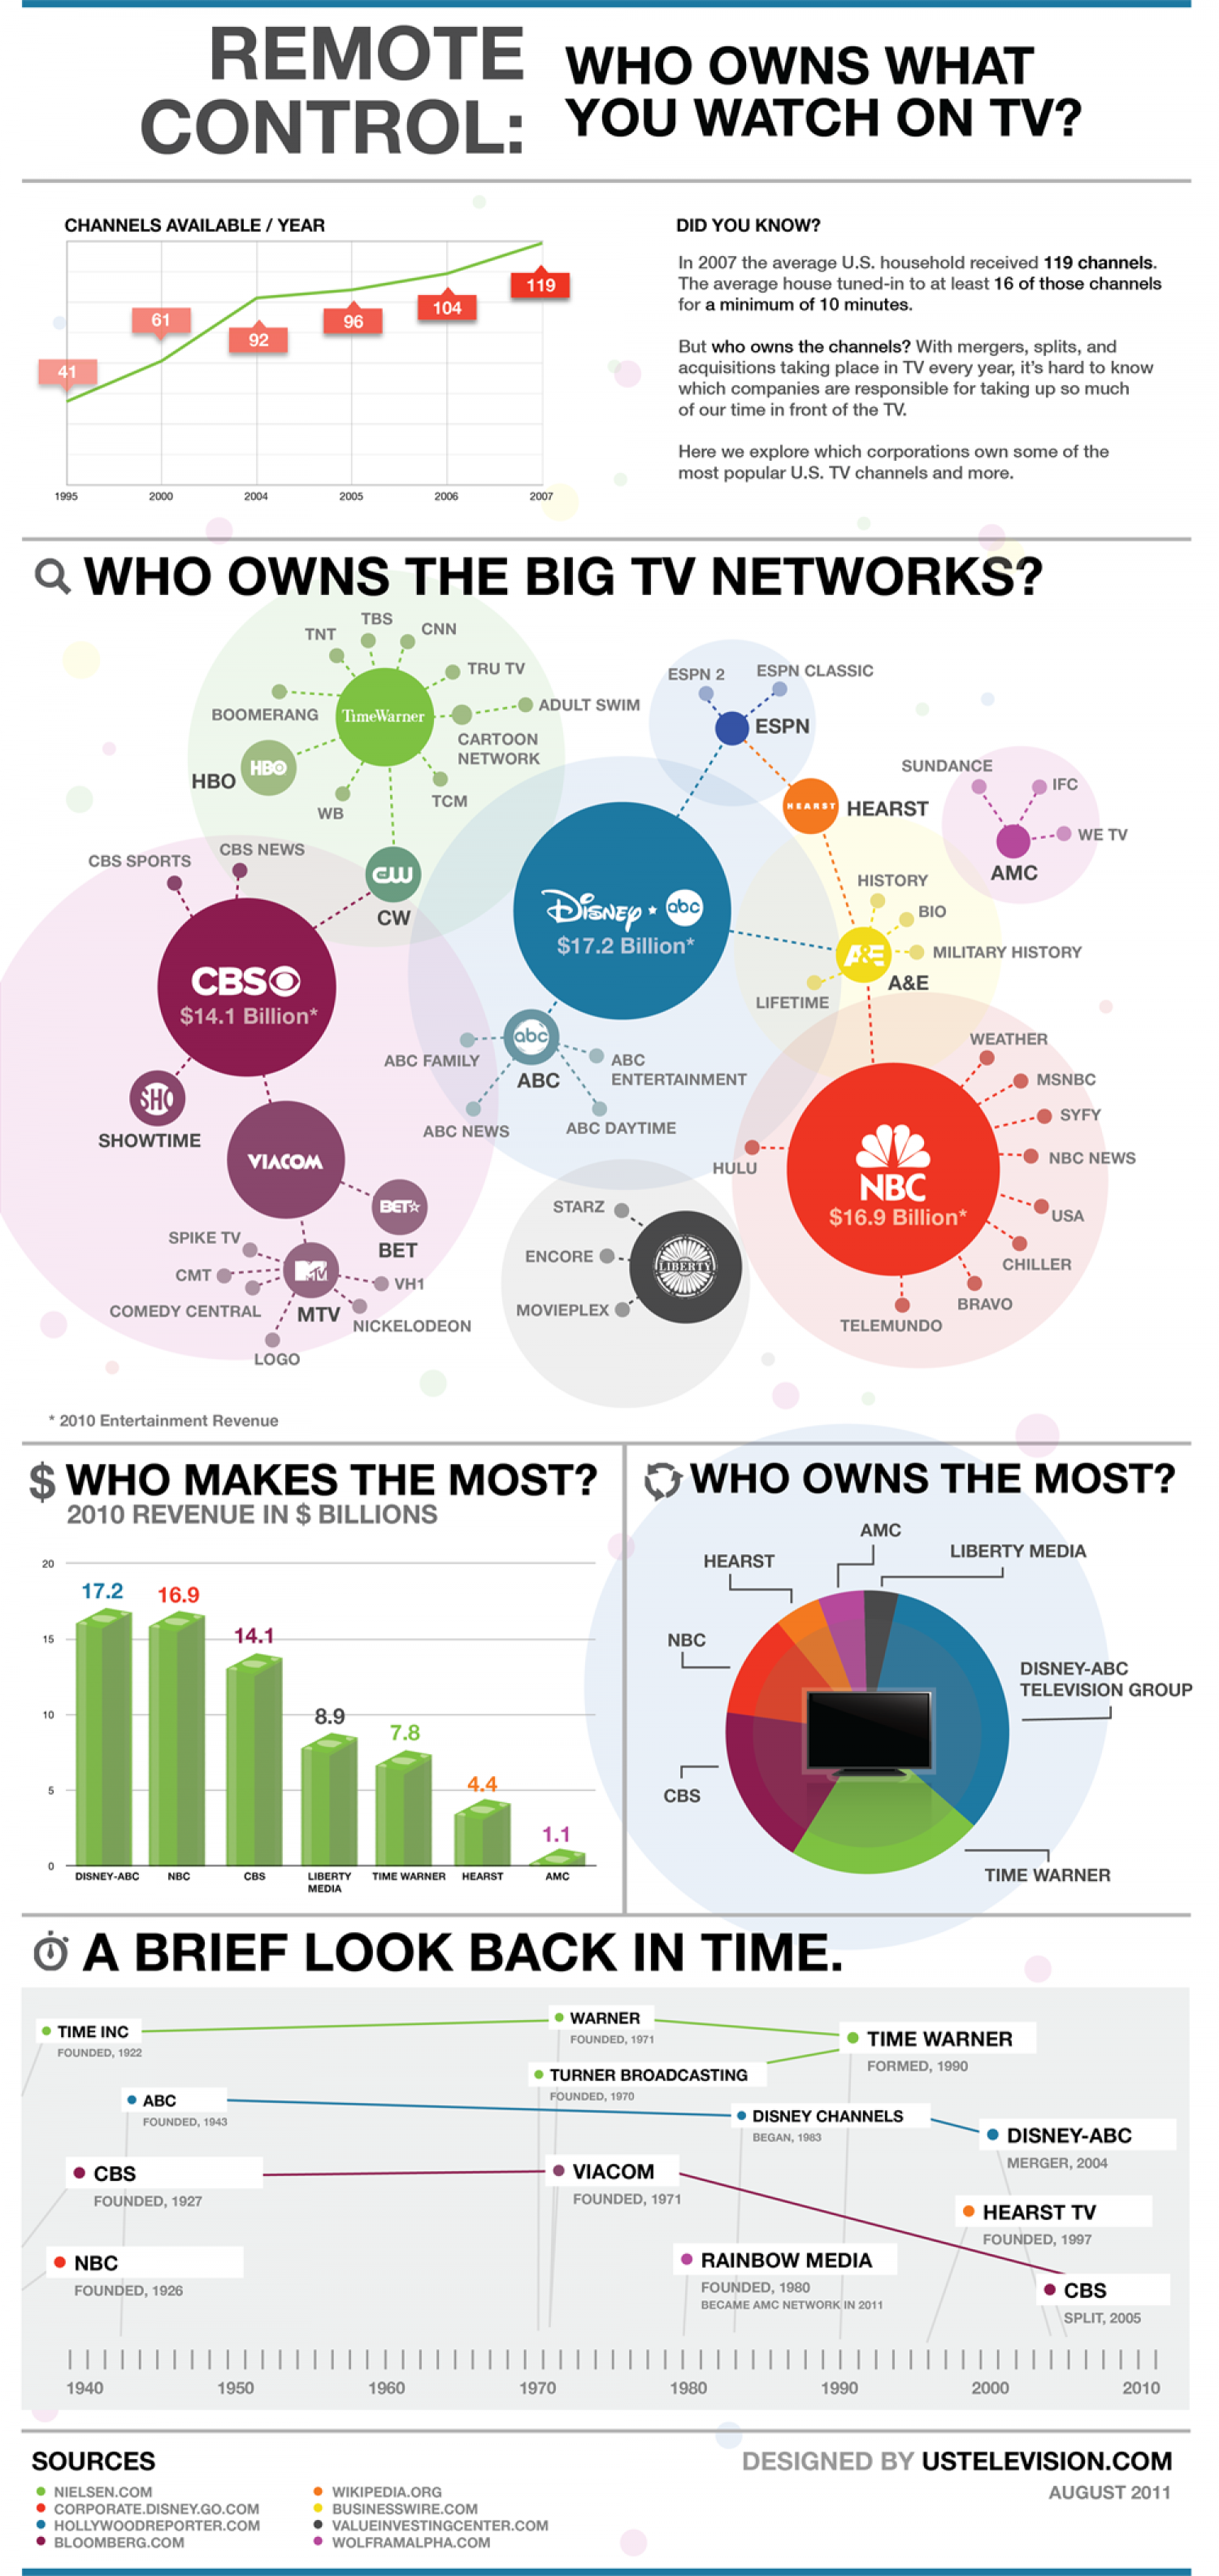 Remote Control: Who Owns What you Watch on T.V? Infographic